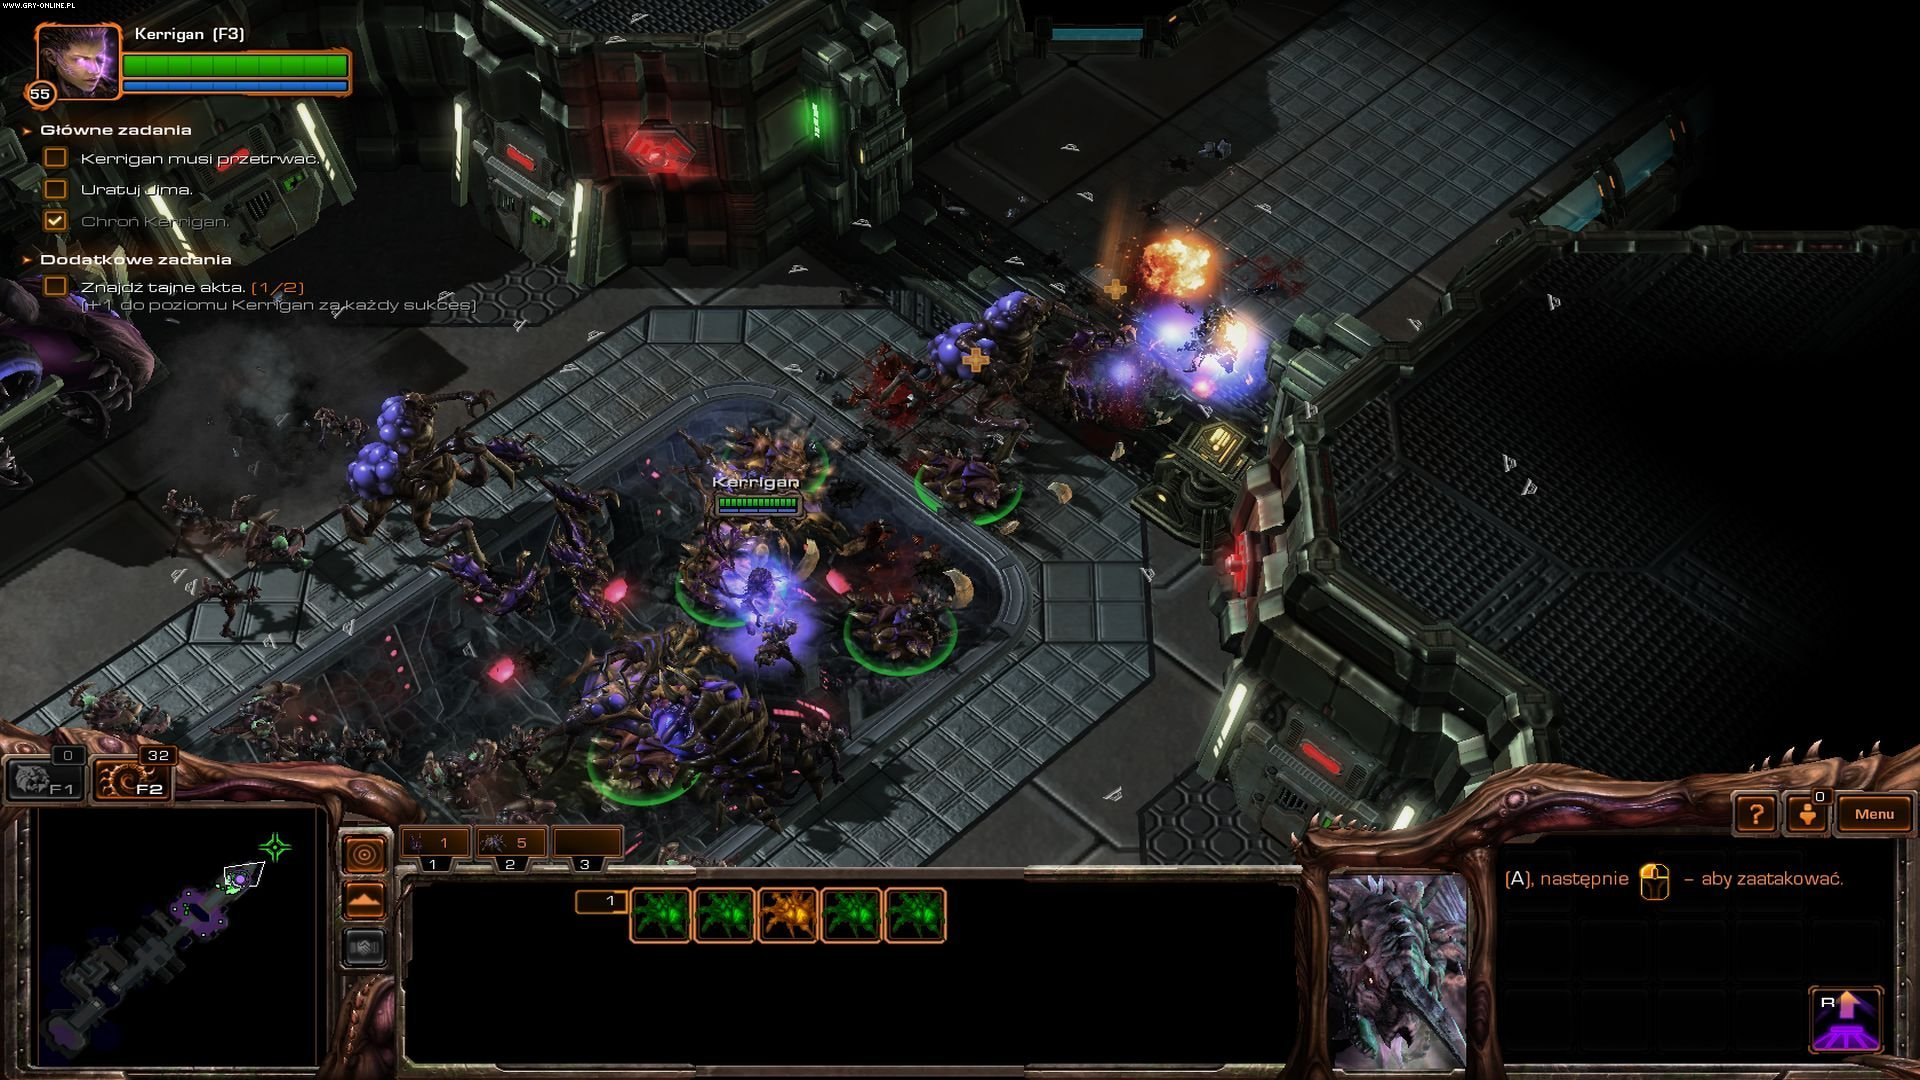 StarCraft II: Heart of the Swarm PC Gry Screen 5/199, Blizzard Entertainment